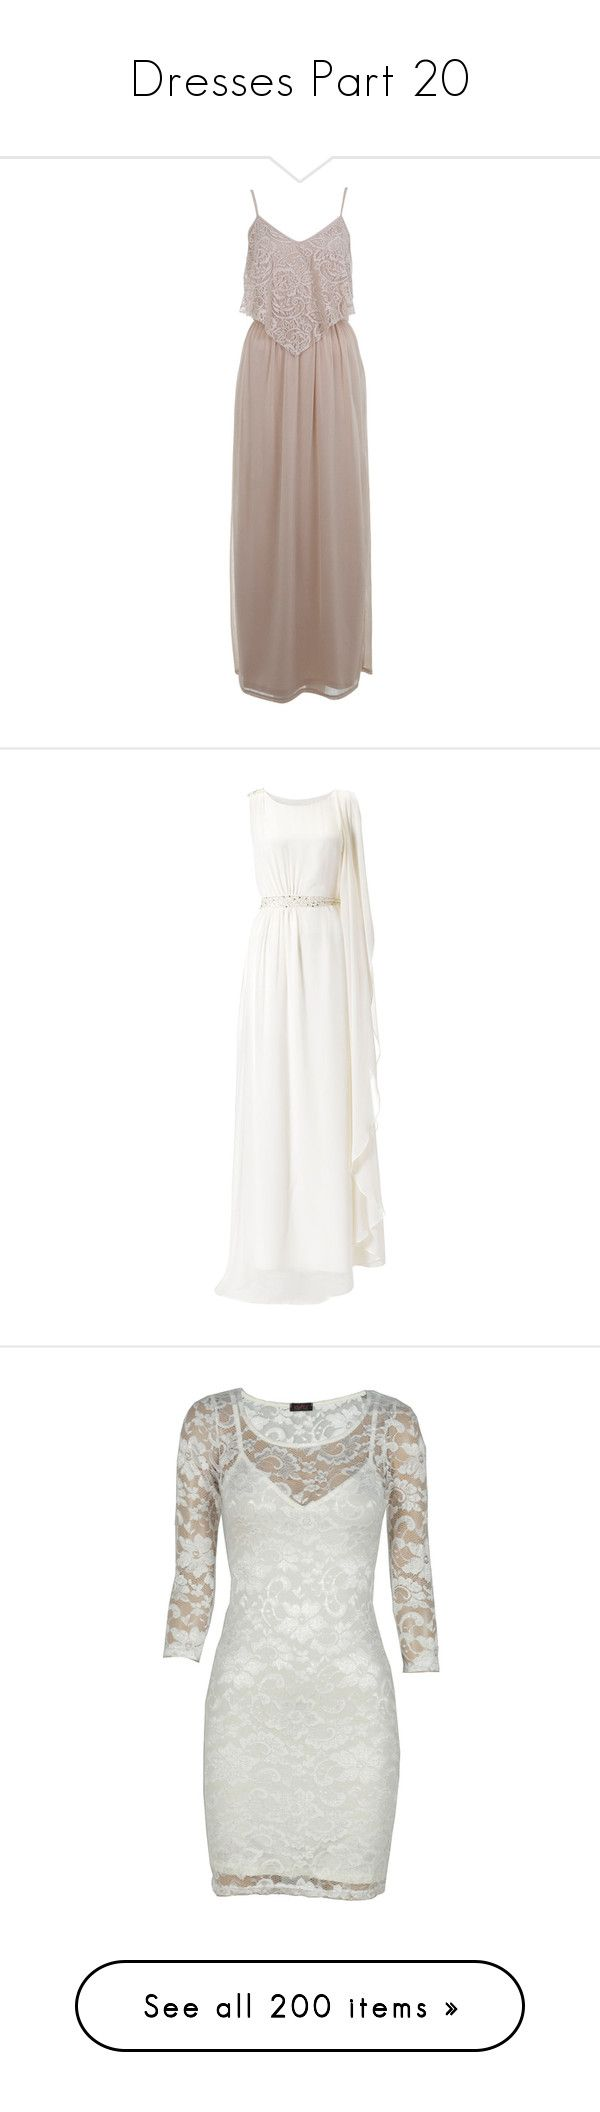 """""""Dresses Part 20"""" by ilovecats-886 ❤ liked on Polyvore featuring dresses, maxi dress, miss selfridge, nude, miss selfridge dresses, flutter-sleeve dress, ruffled dresses, nude dress, lace maxi dress and wedding dresses"""